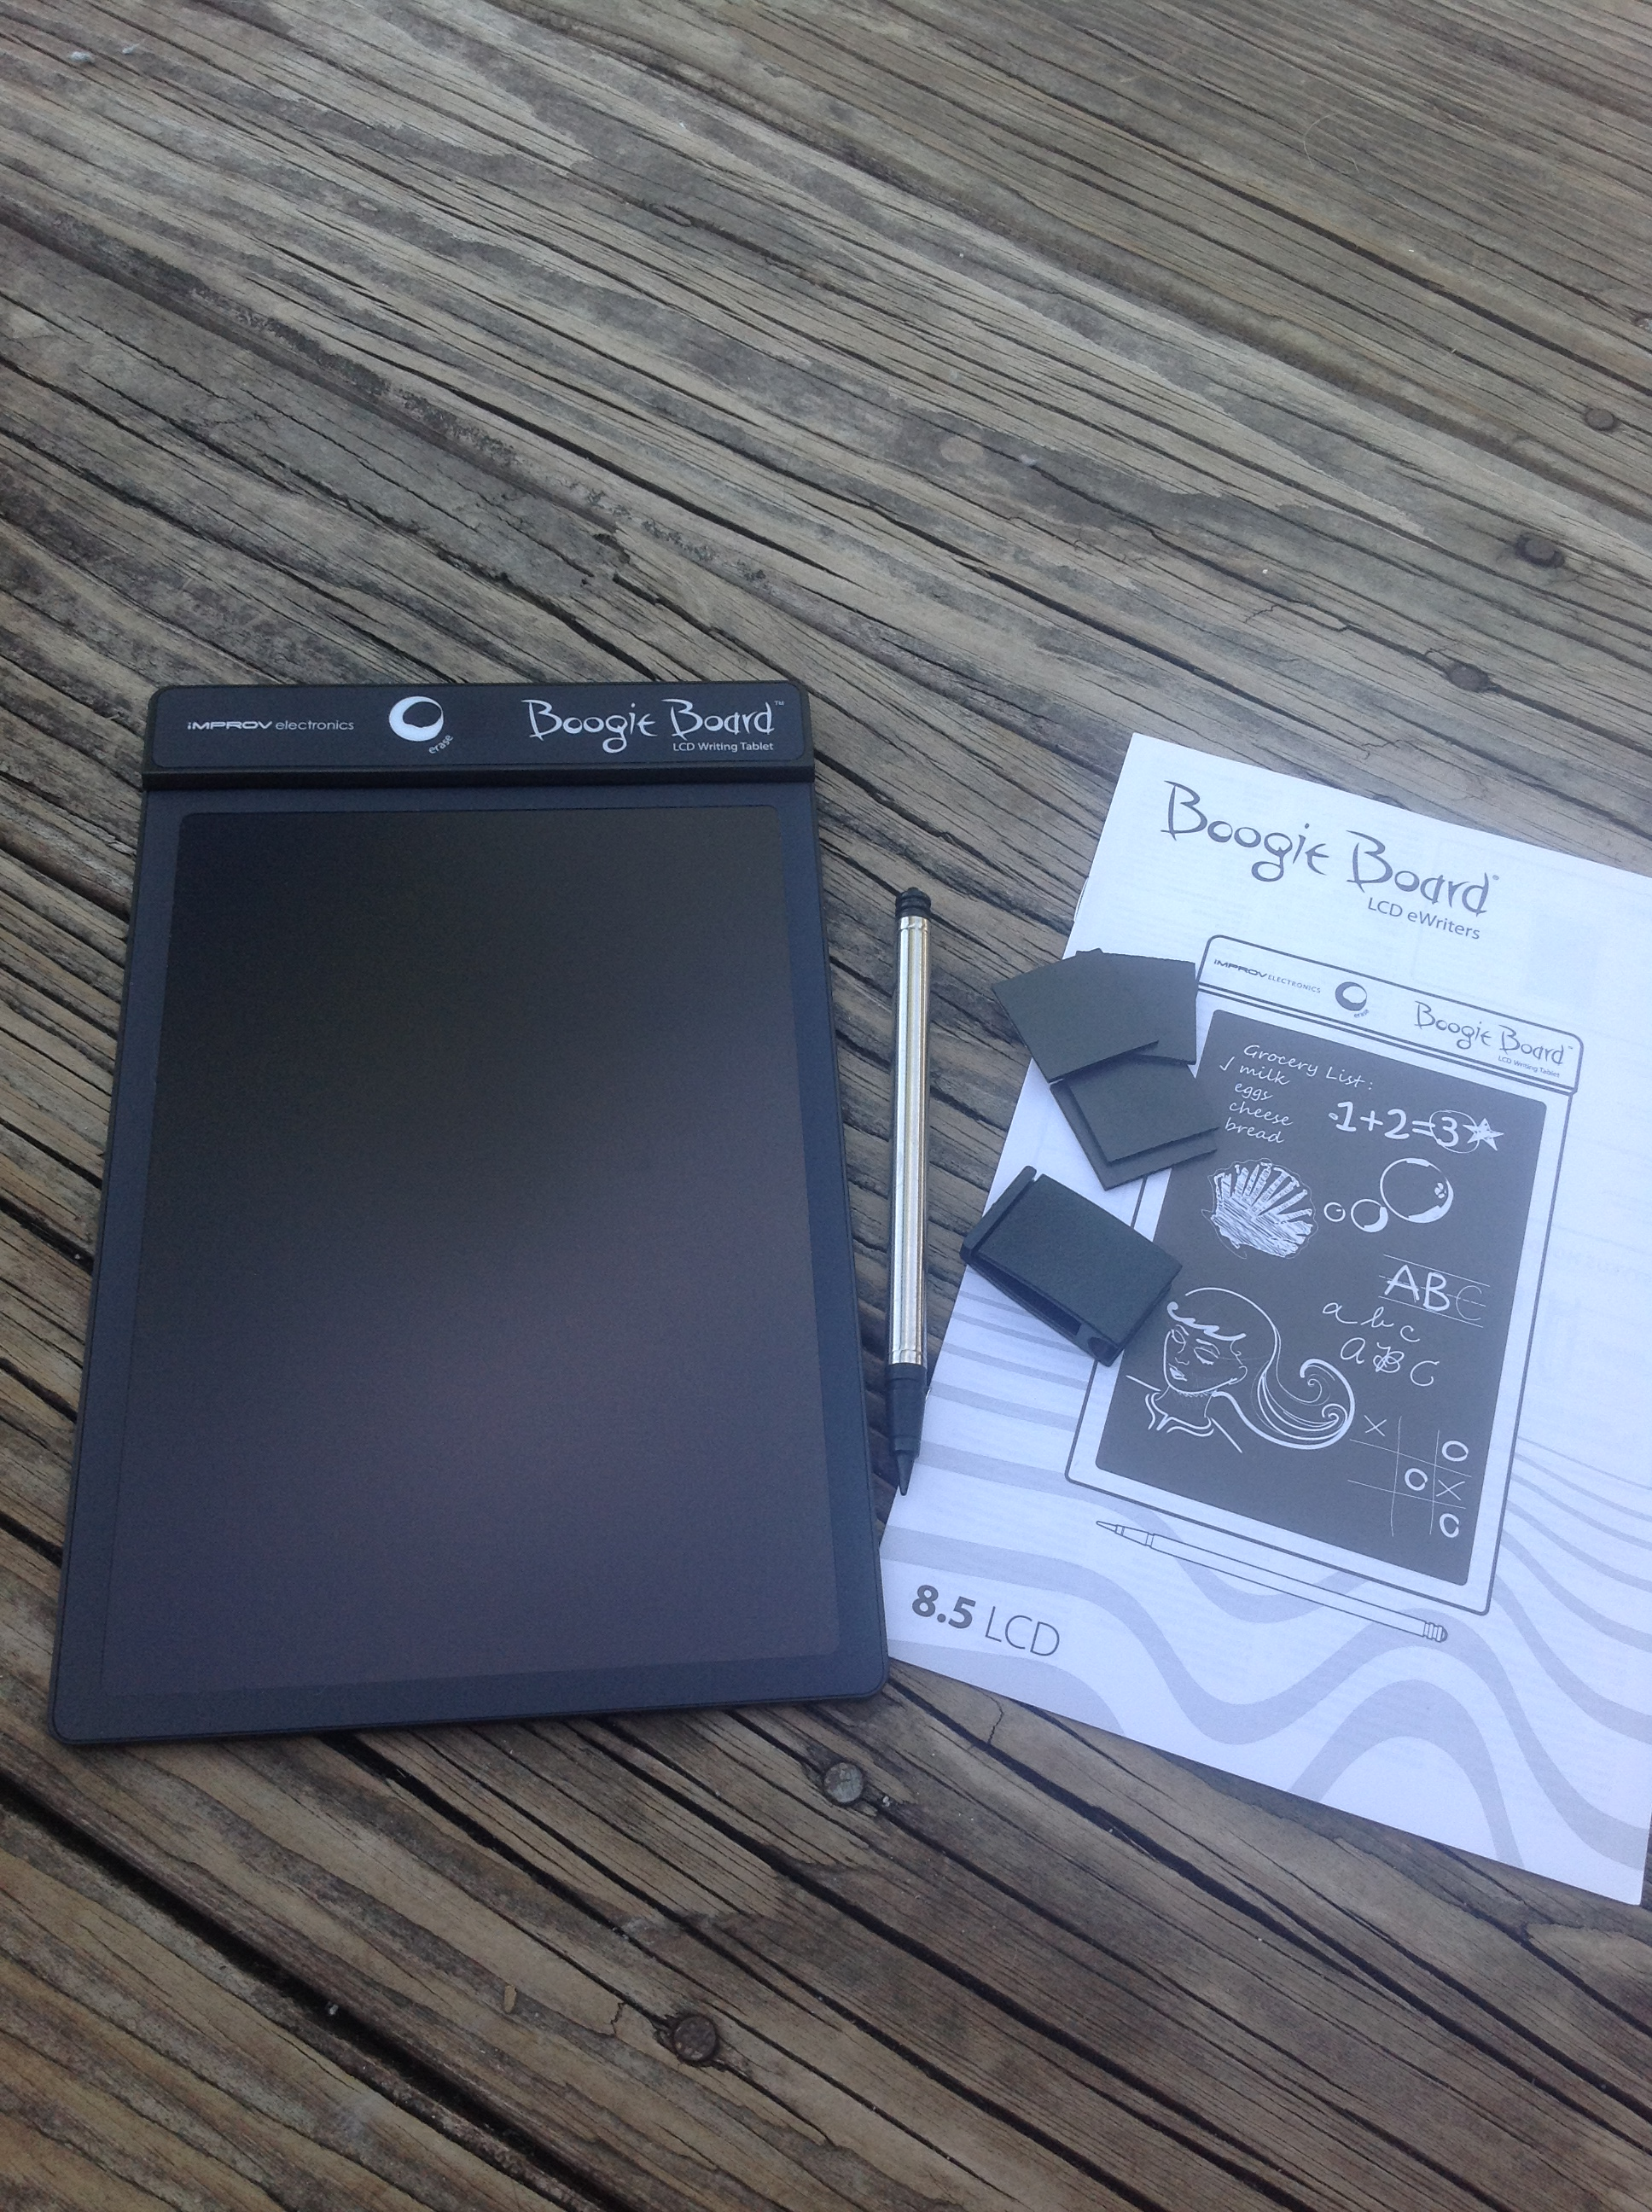 Boogie Board LCD eWriter Review